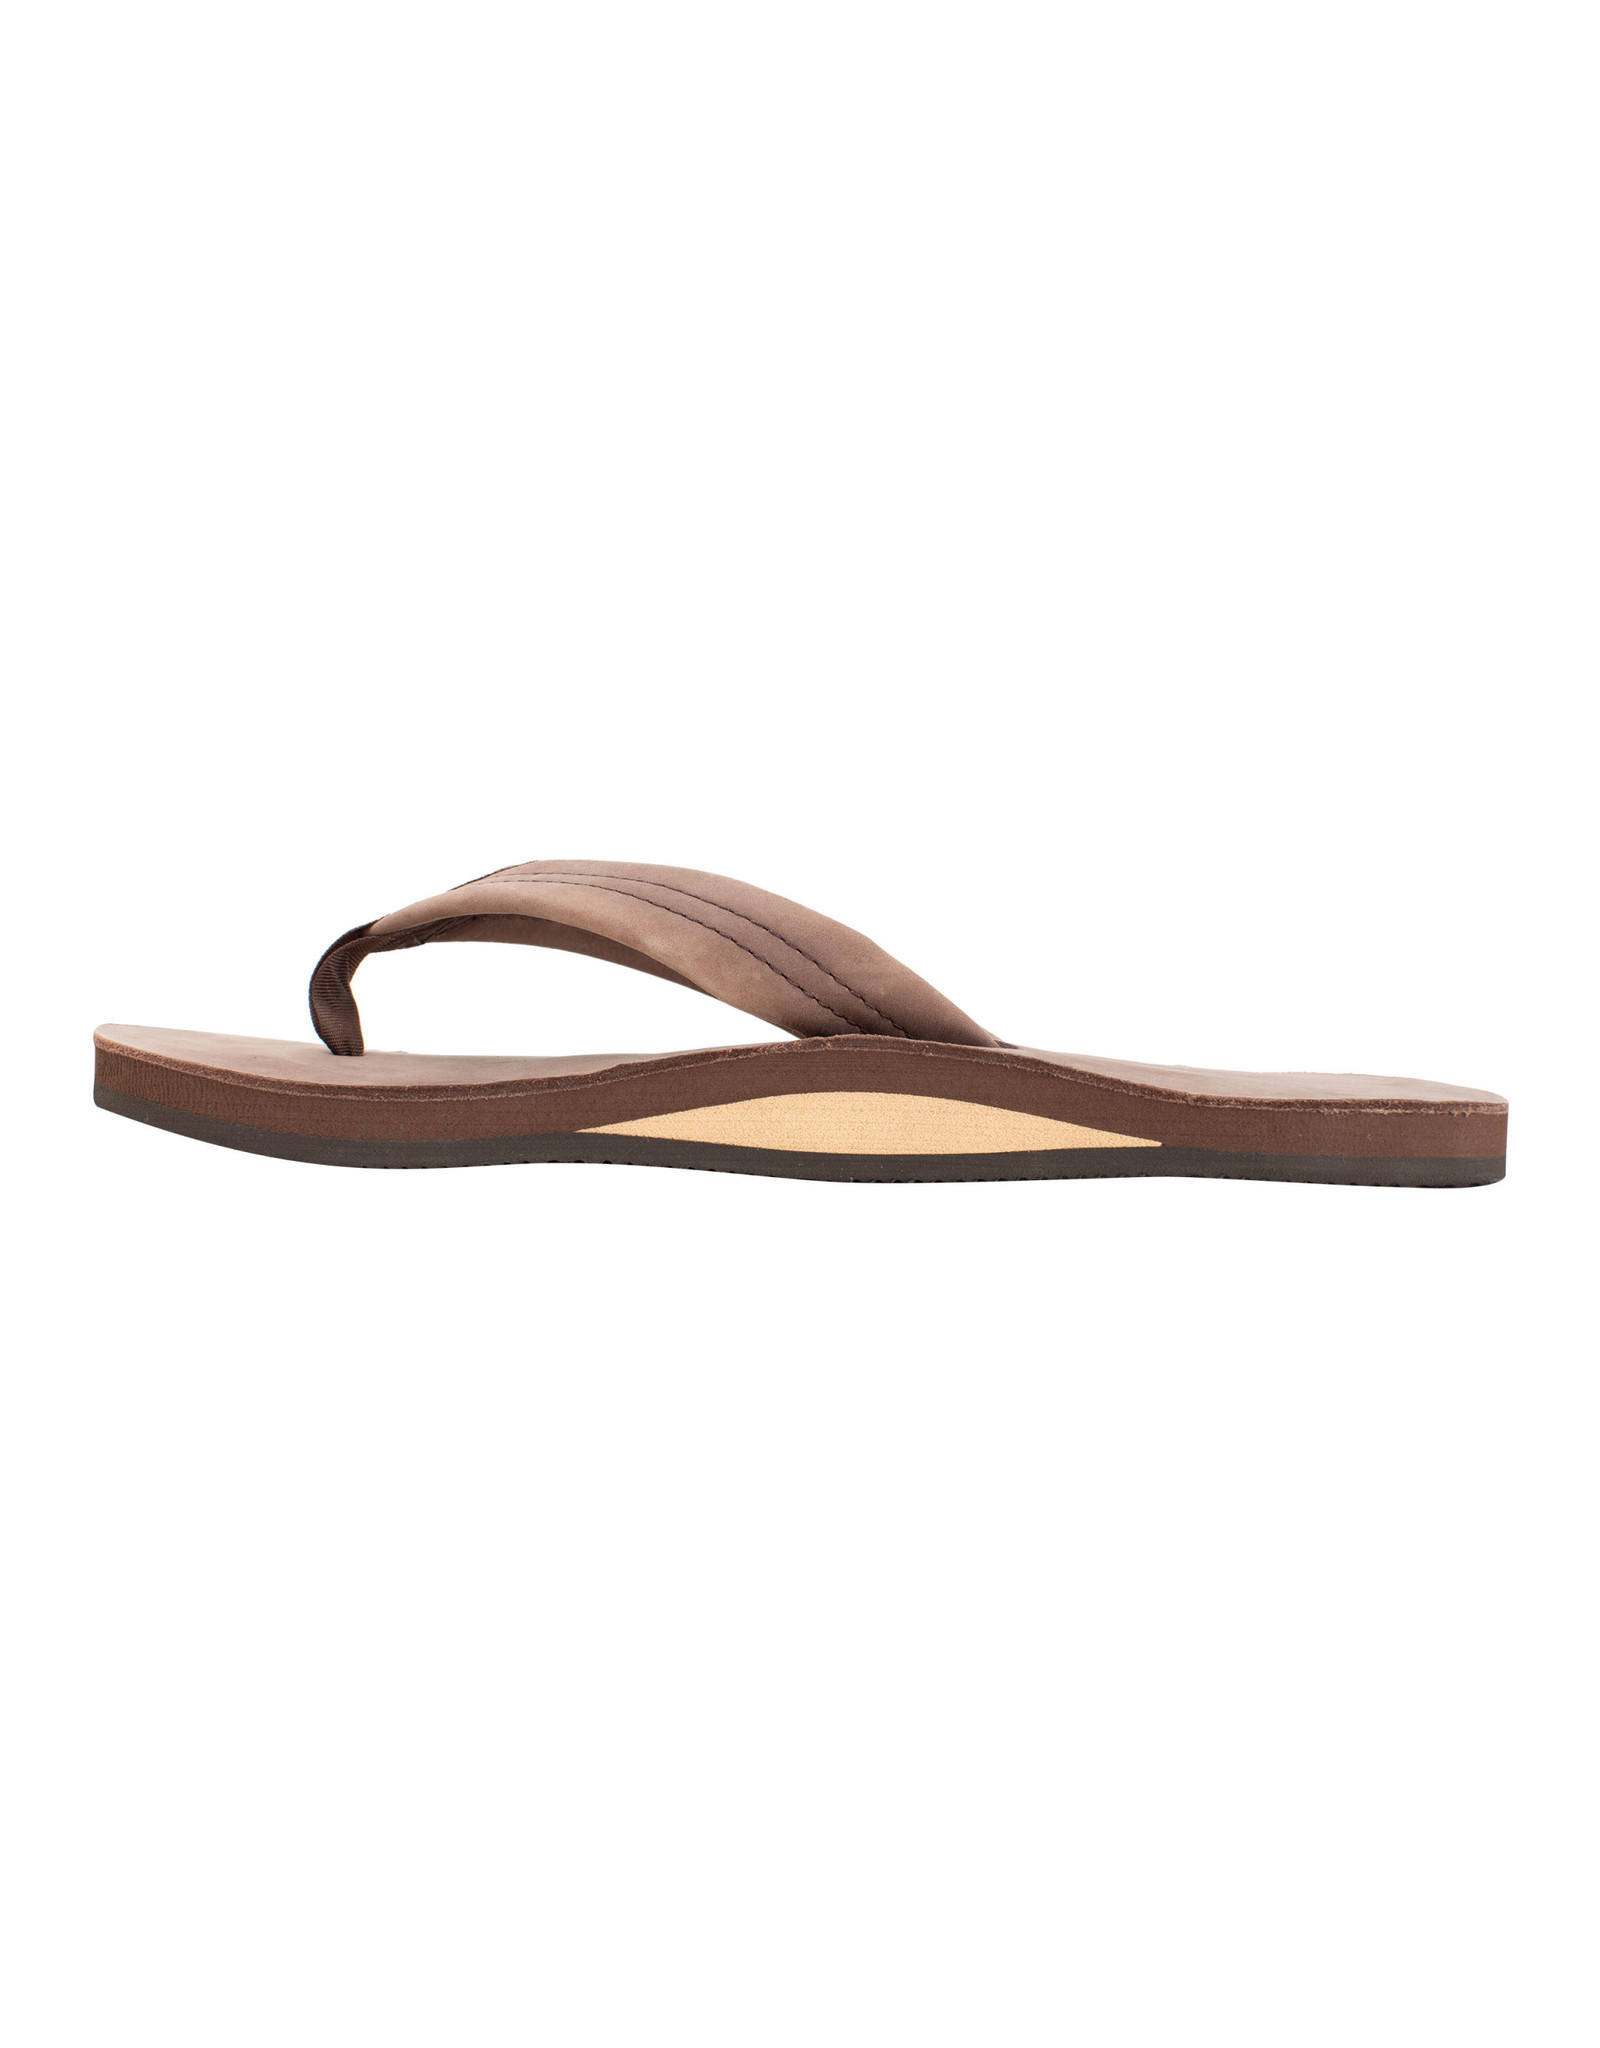 Rainbow Sandals Mens Premier Leather Single Layer Arch